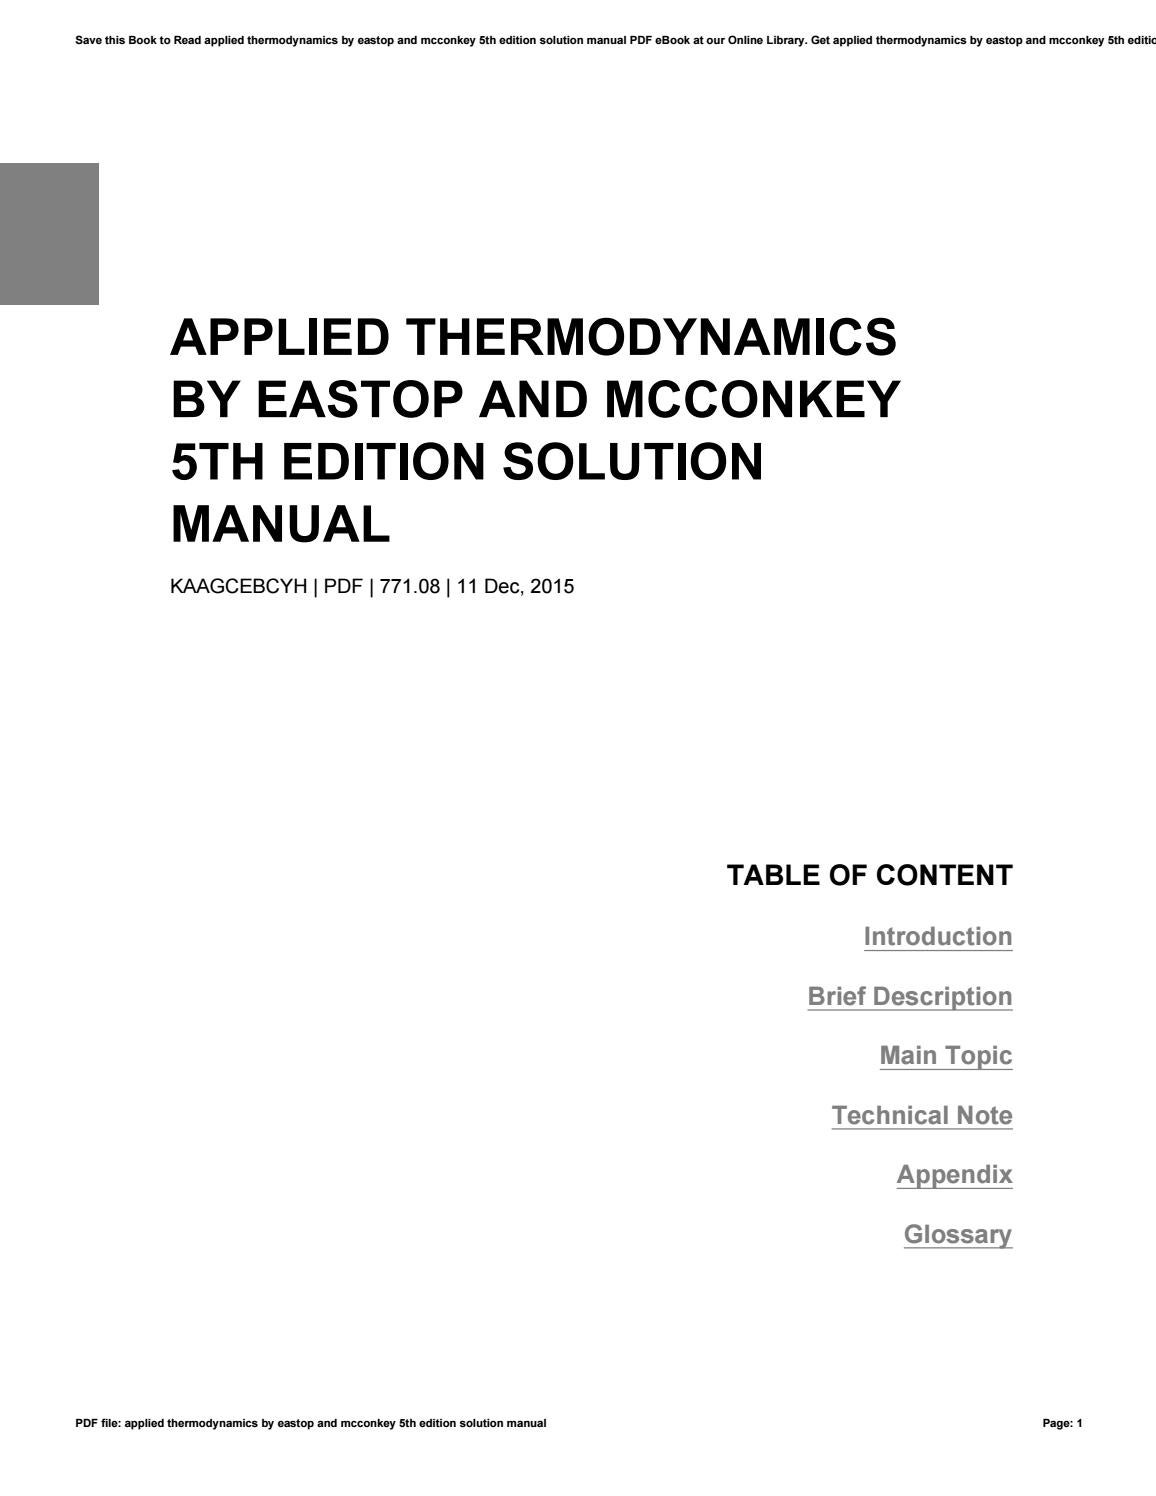 Applied thermodynamics by eastop and mcconkey 5th edition solution manual  by Valerie - issuu